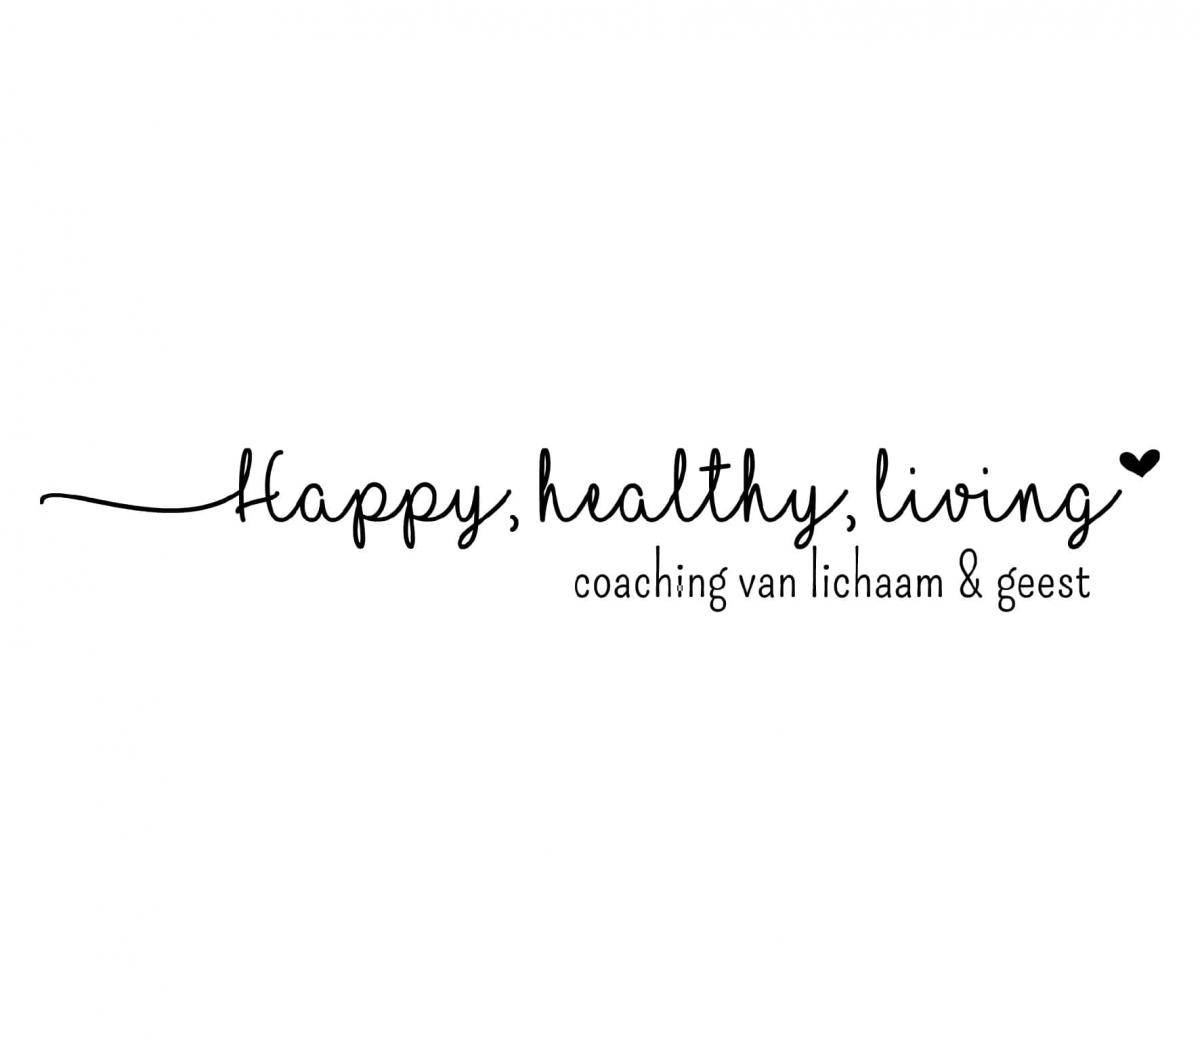 Logo Happy, Healthy, Living coaching